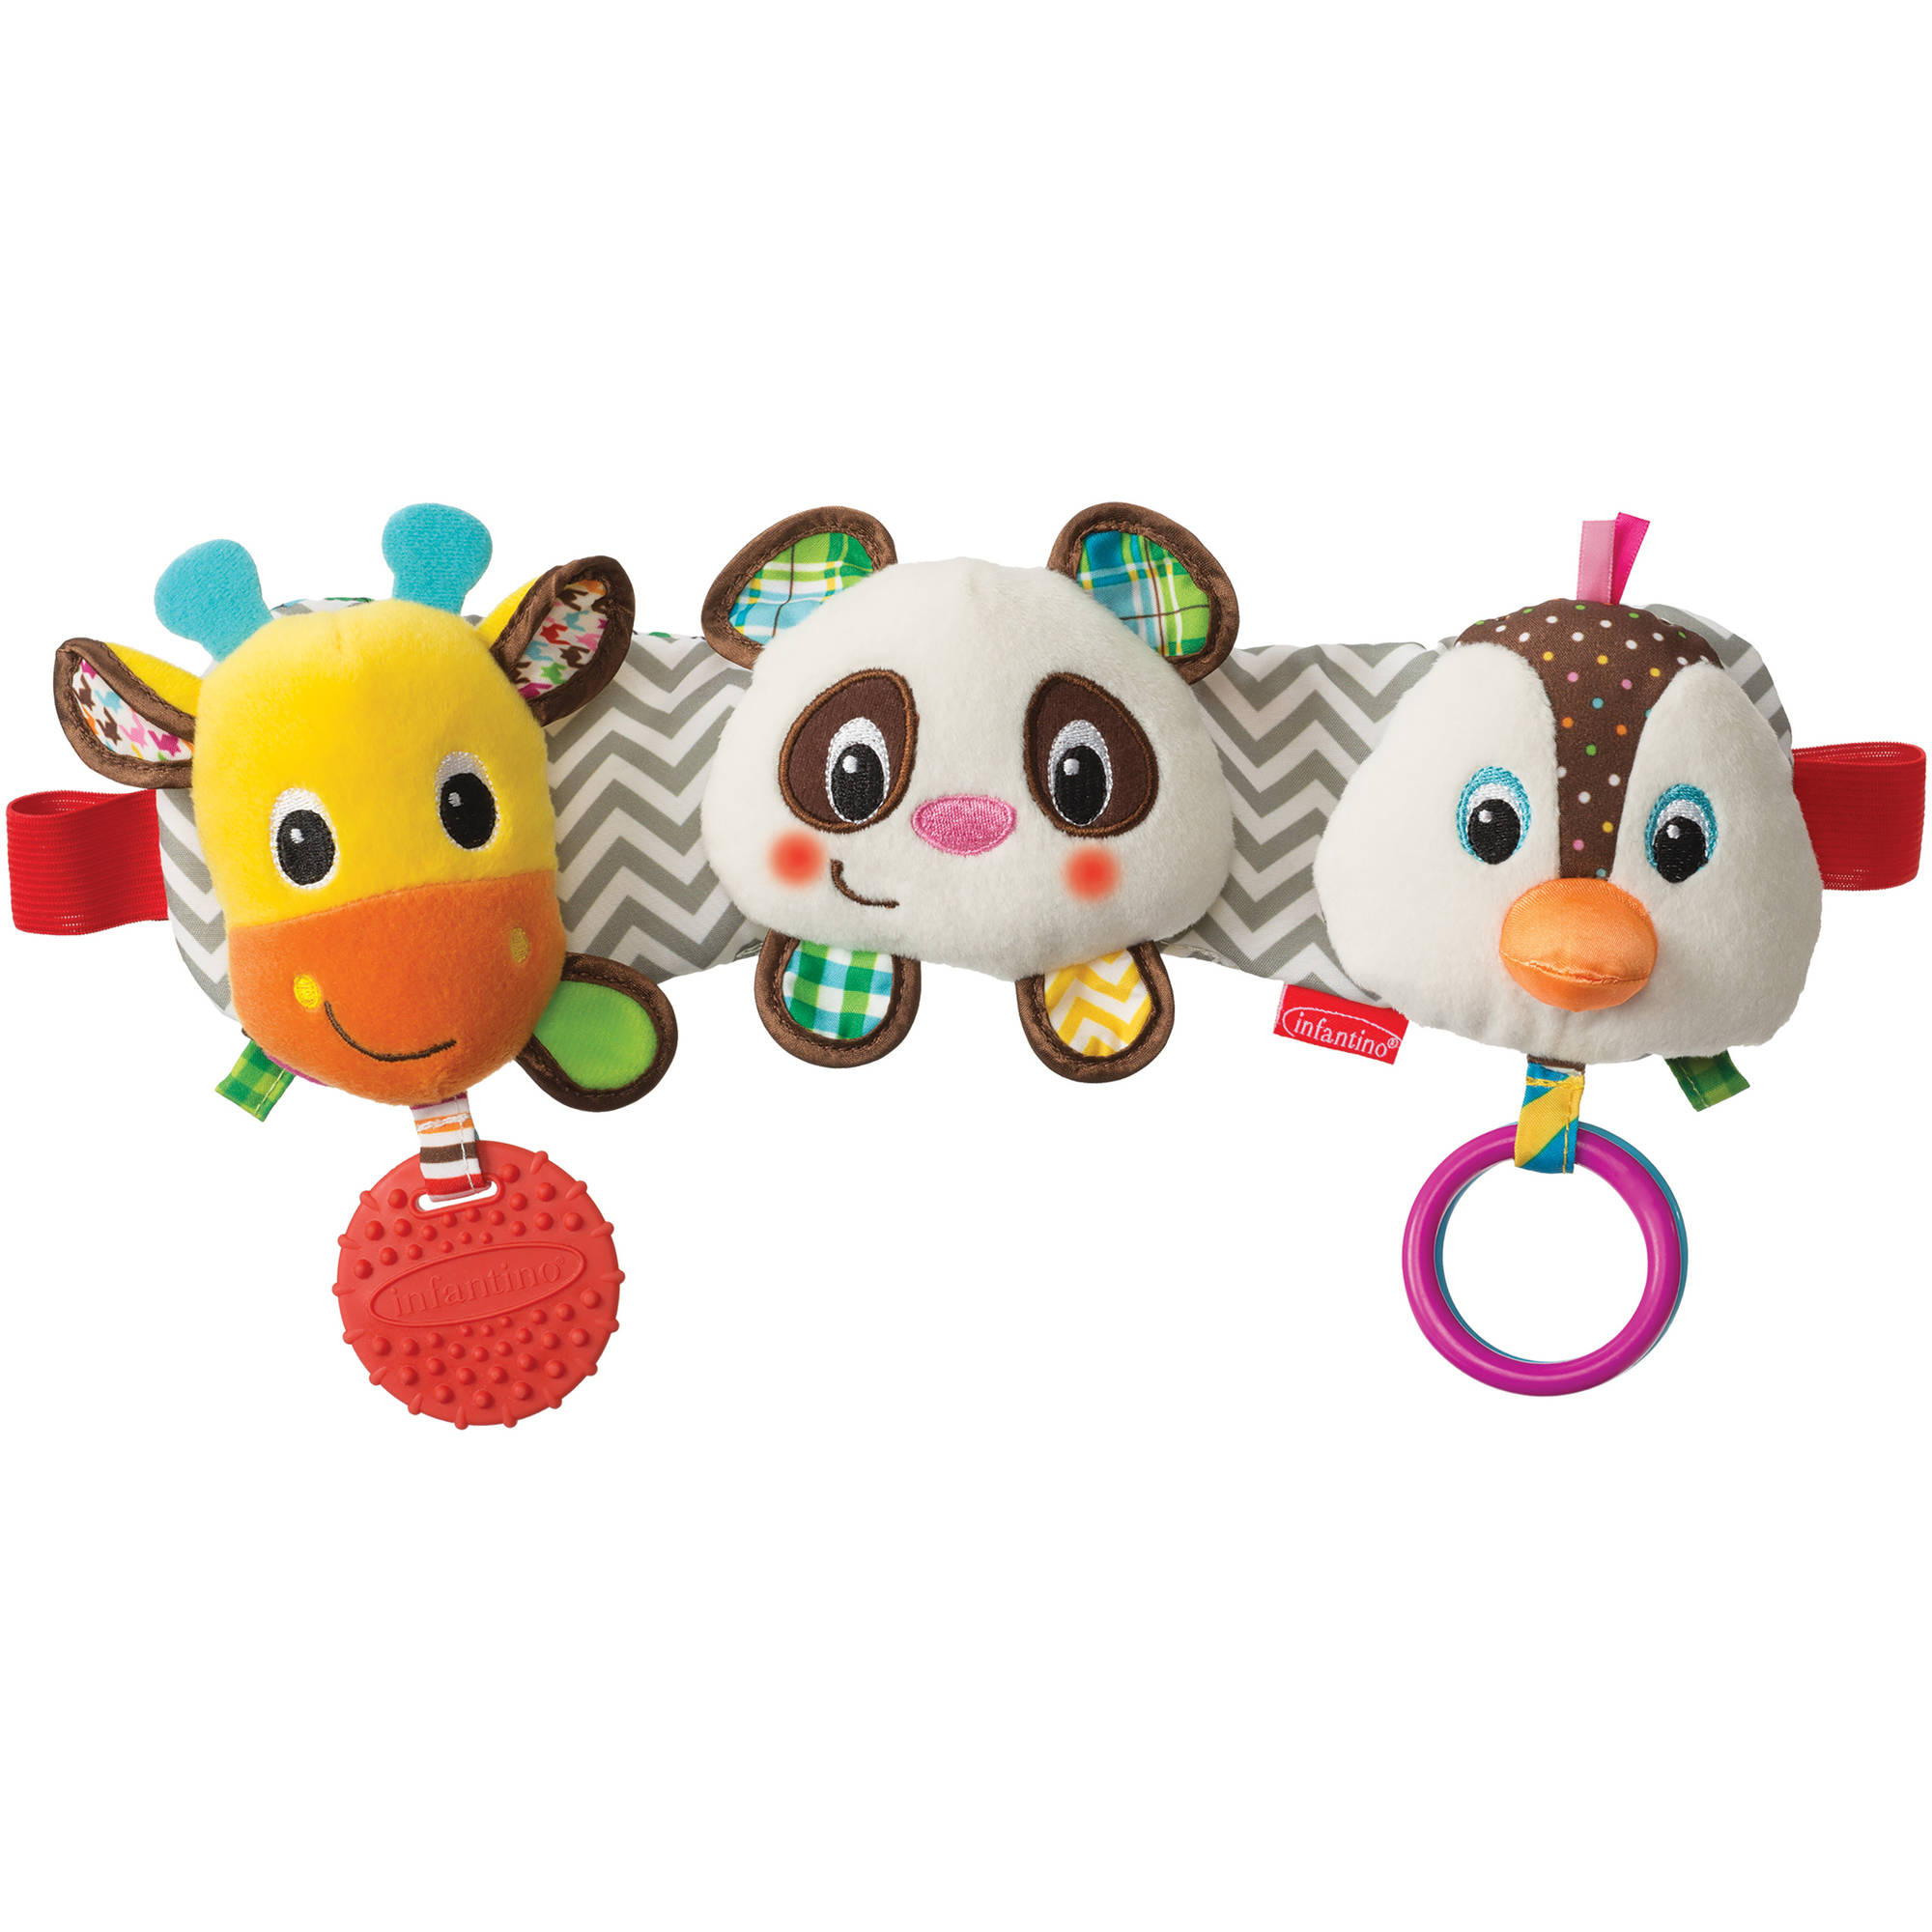 Infantino Stretch & Play Musical Travel Trio